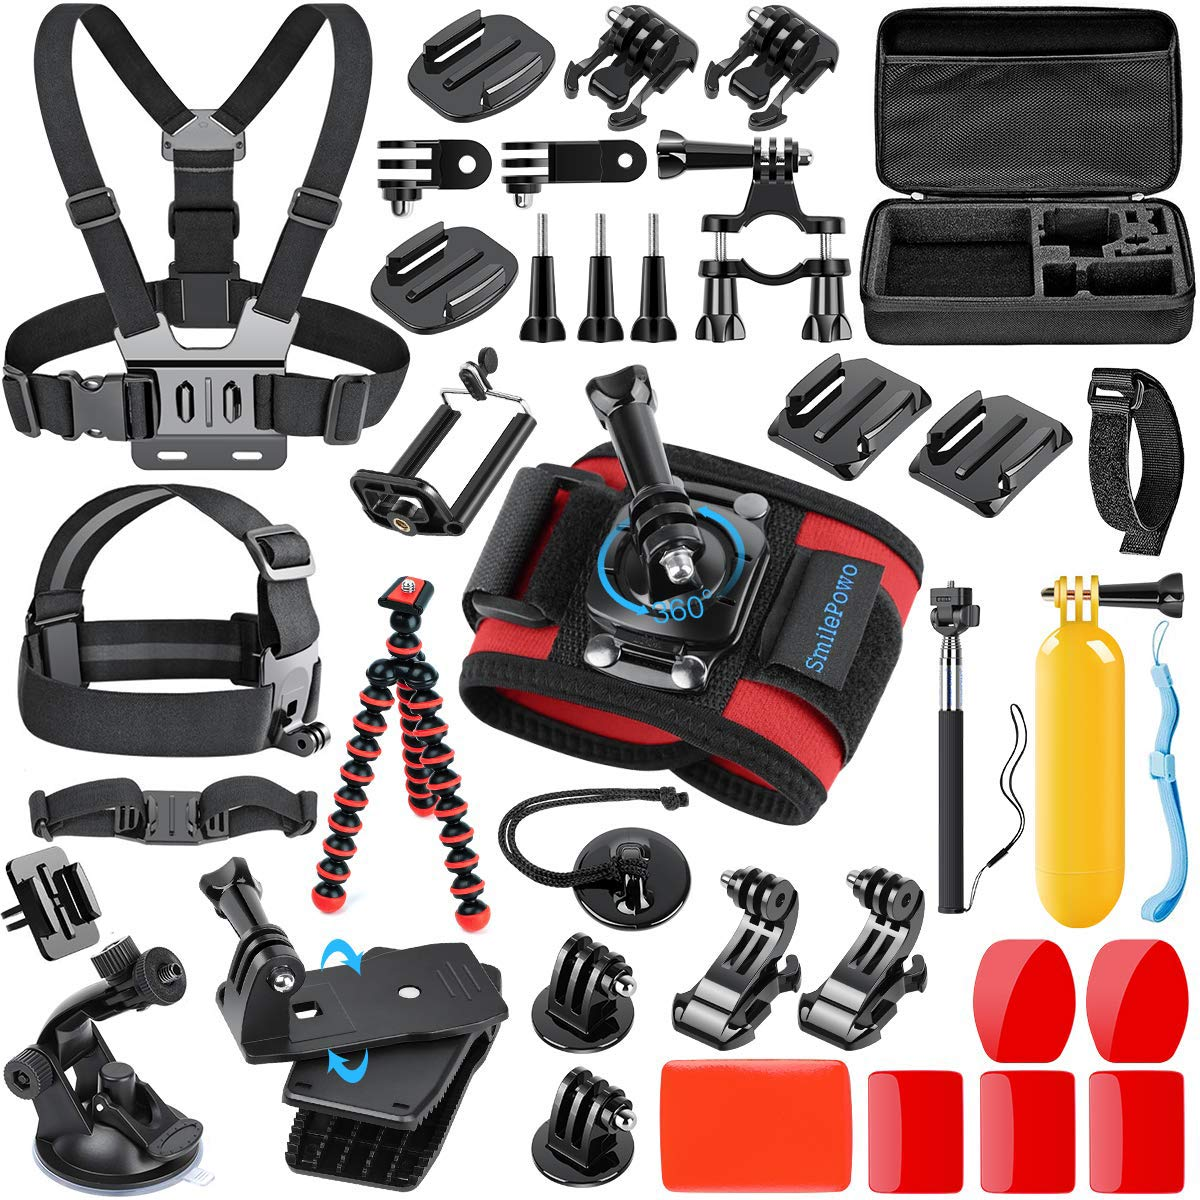 SmilePowo 42-in-1 Accessorries Kit for GoPro Hero 7 6 5 4 3/3+ 2 1 2018 Session/Fusion Black Silver DBPOWER AKASO APEMAN YI Campark SJCAM Sony Sports DV Action Camera with Carrying Case/Chest Strap by SmilePowo